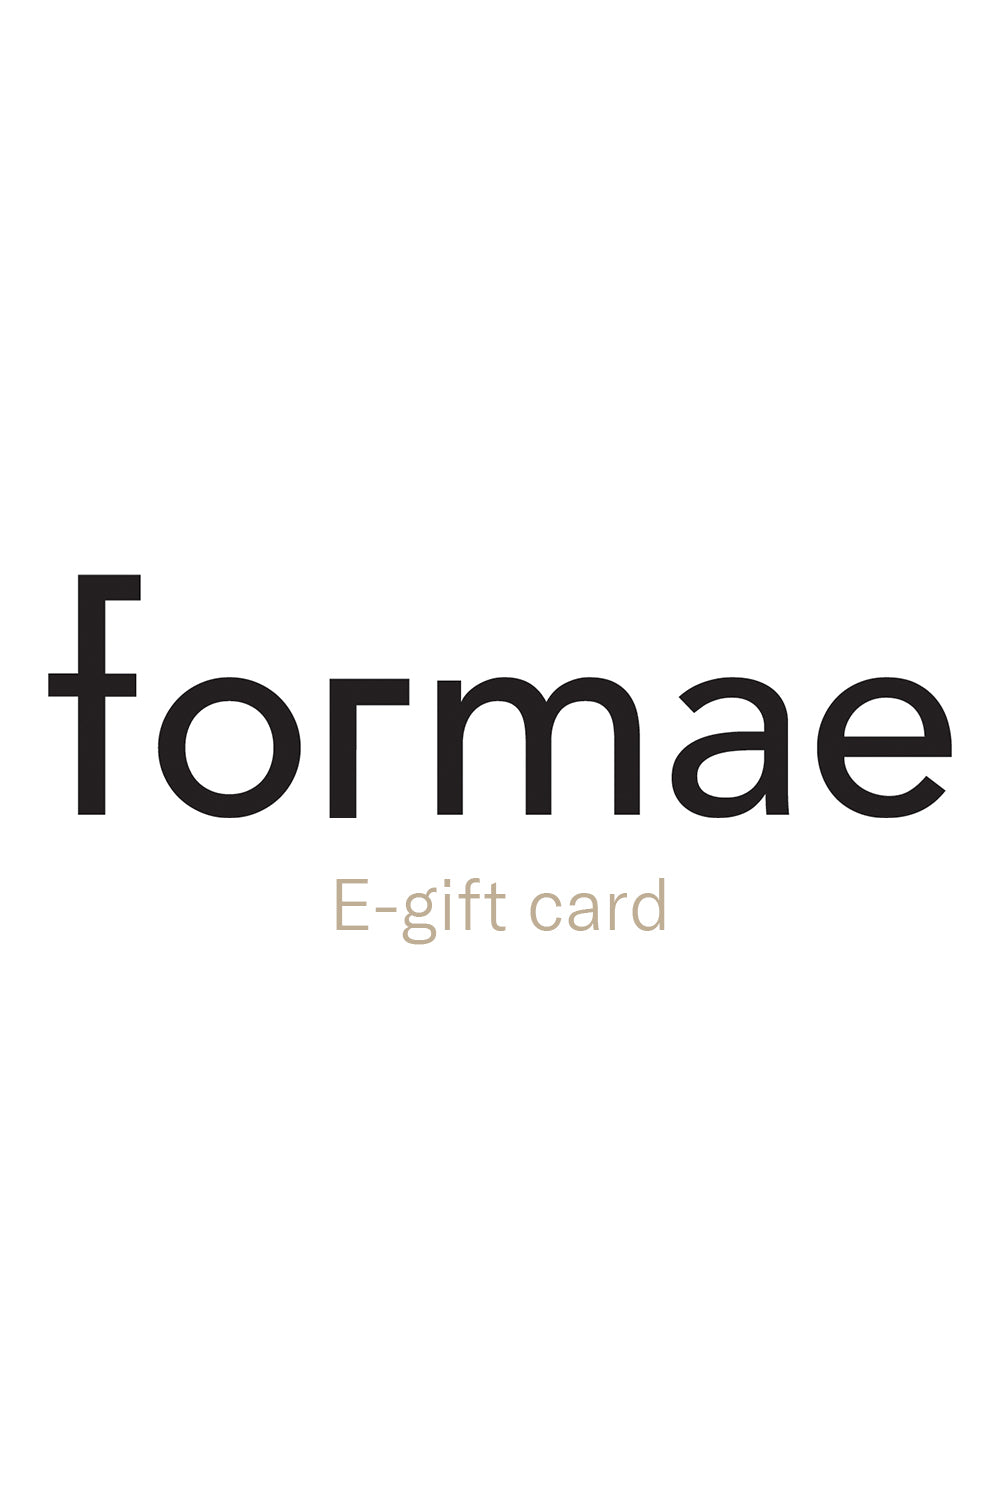 Formae e-gift card. never expires.